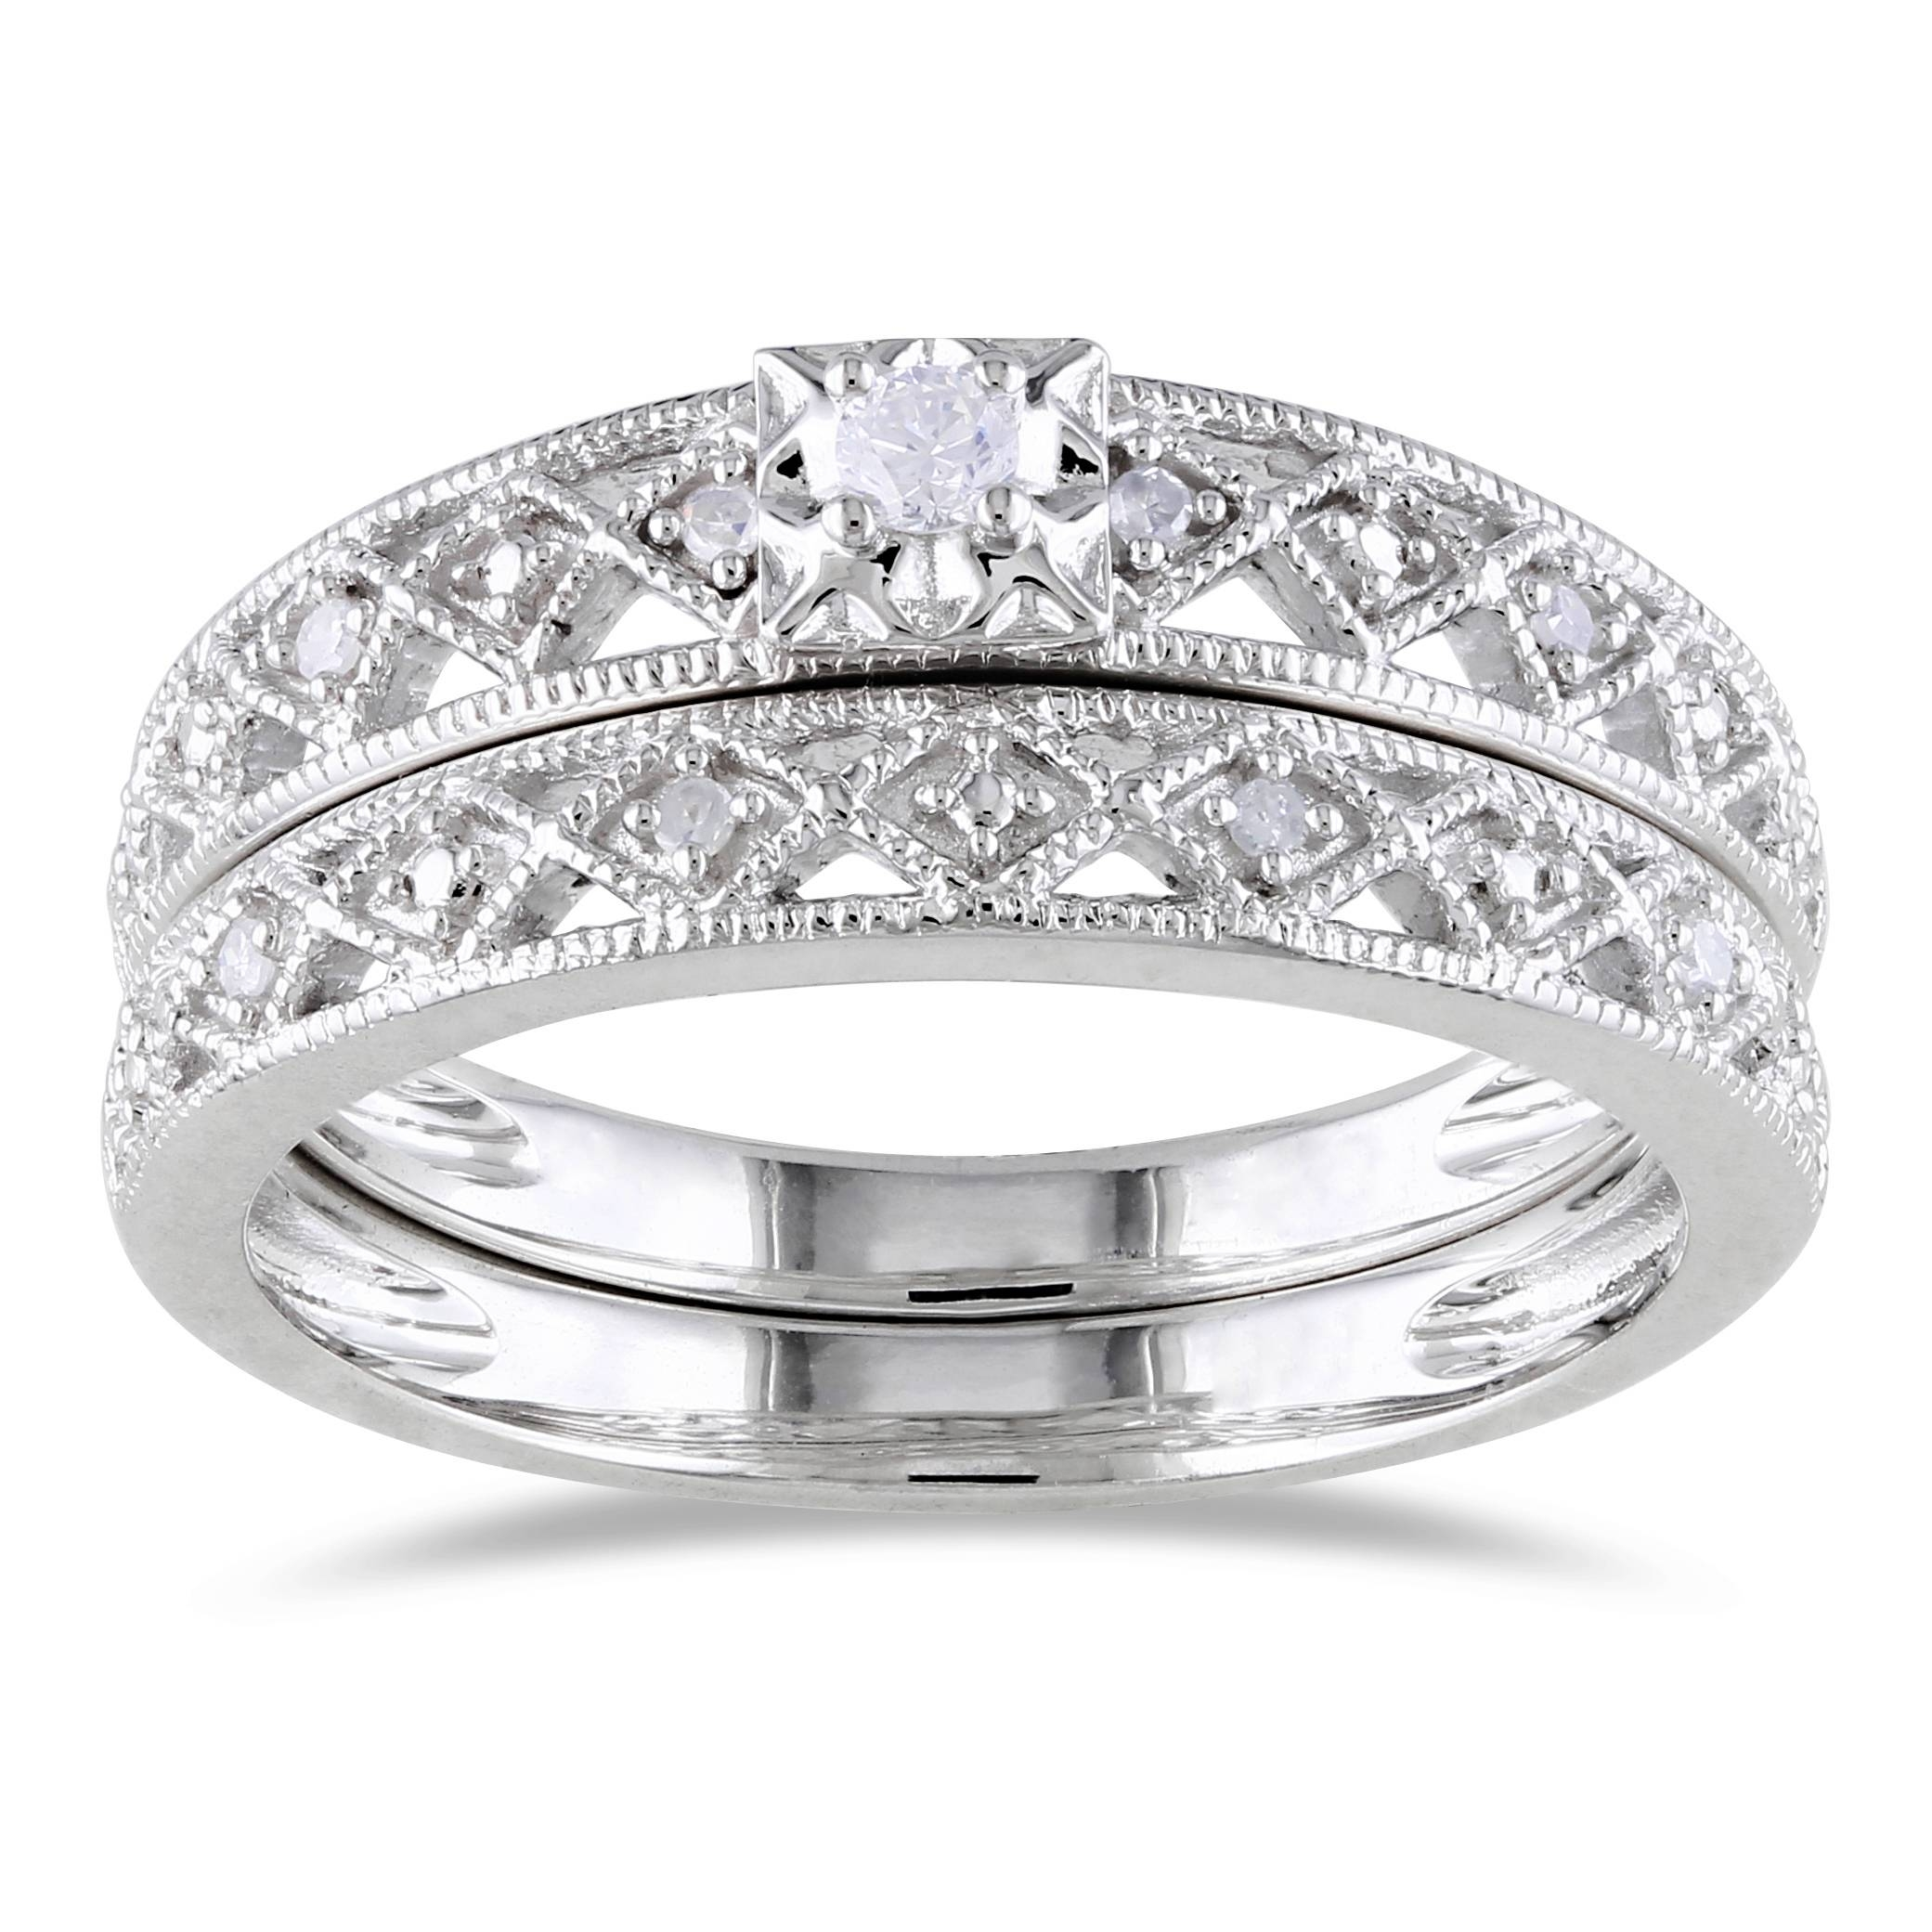 Sterling Silver Diamond Wedding Ring Wedwebtalks Simple Silver Throughout Womens Silver Wedding Bands (Gallery 12 of 15)